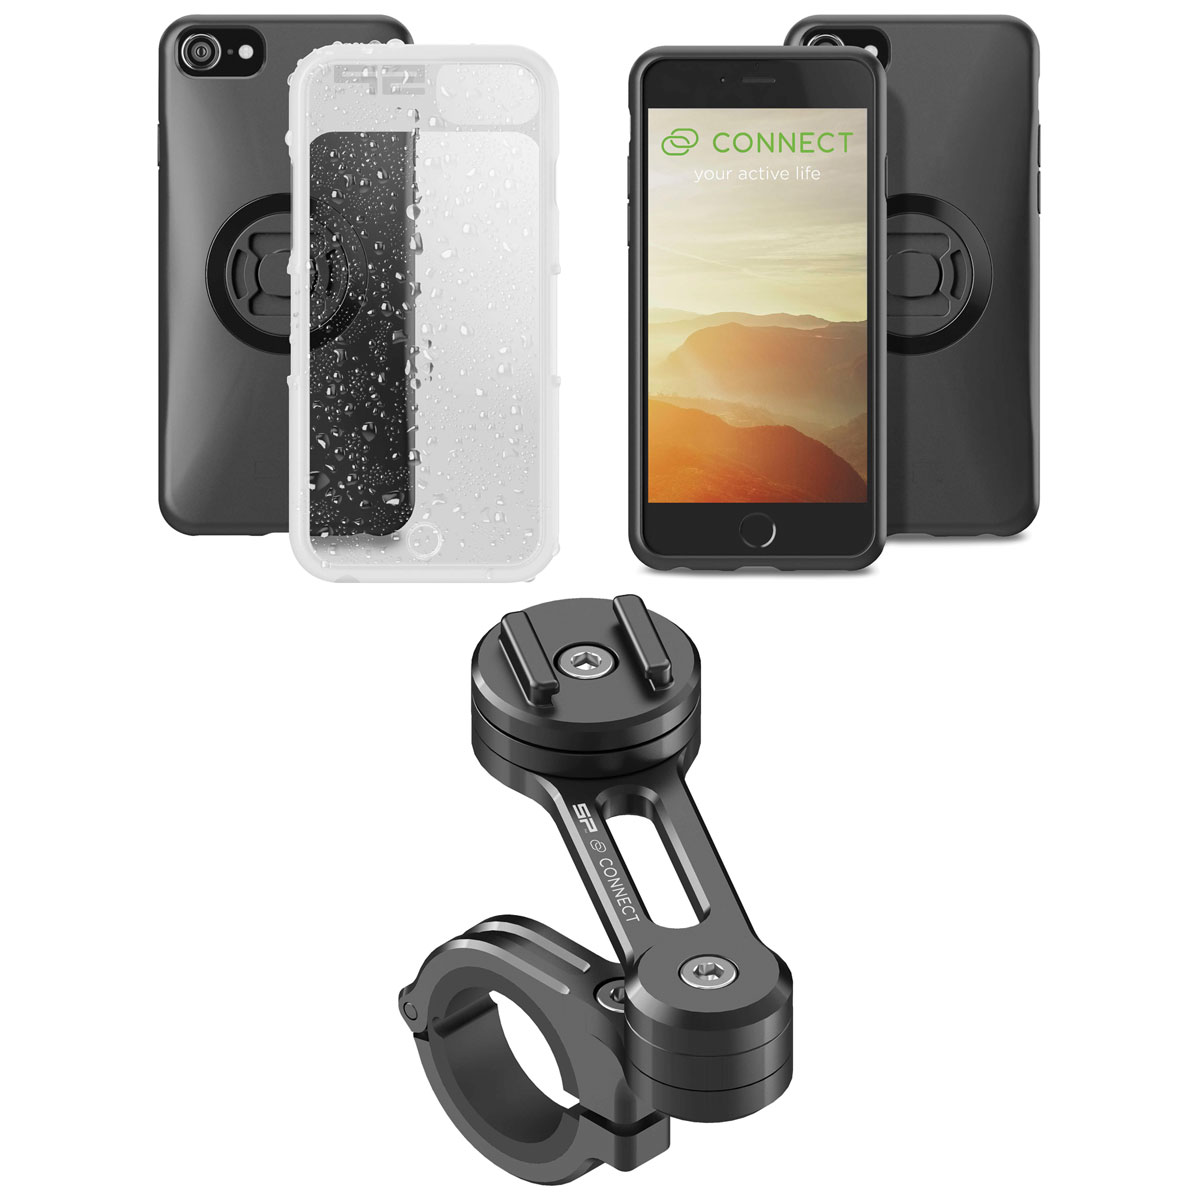 SP Connect Moto Bundle for iPhone 6/6S/7/8